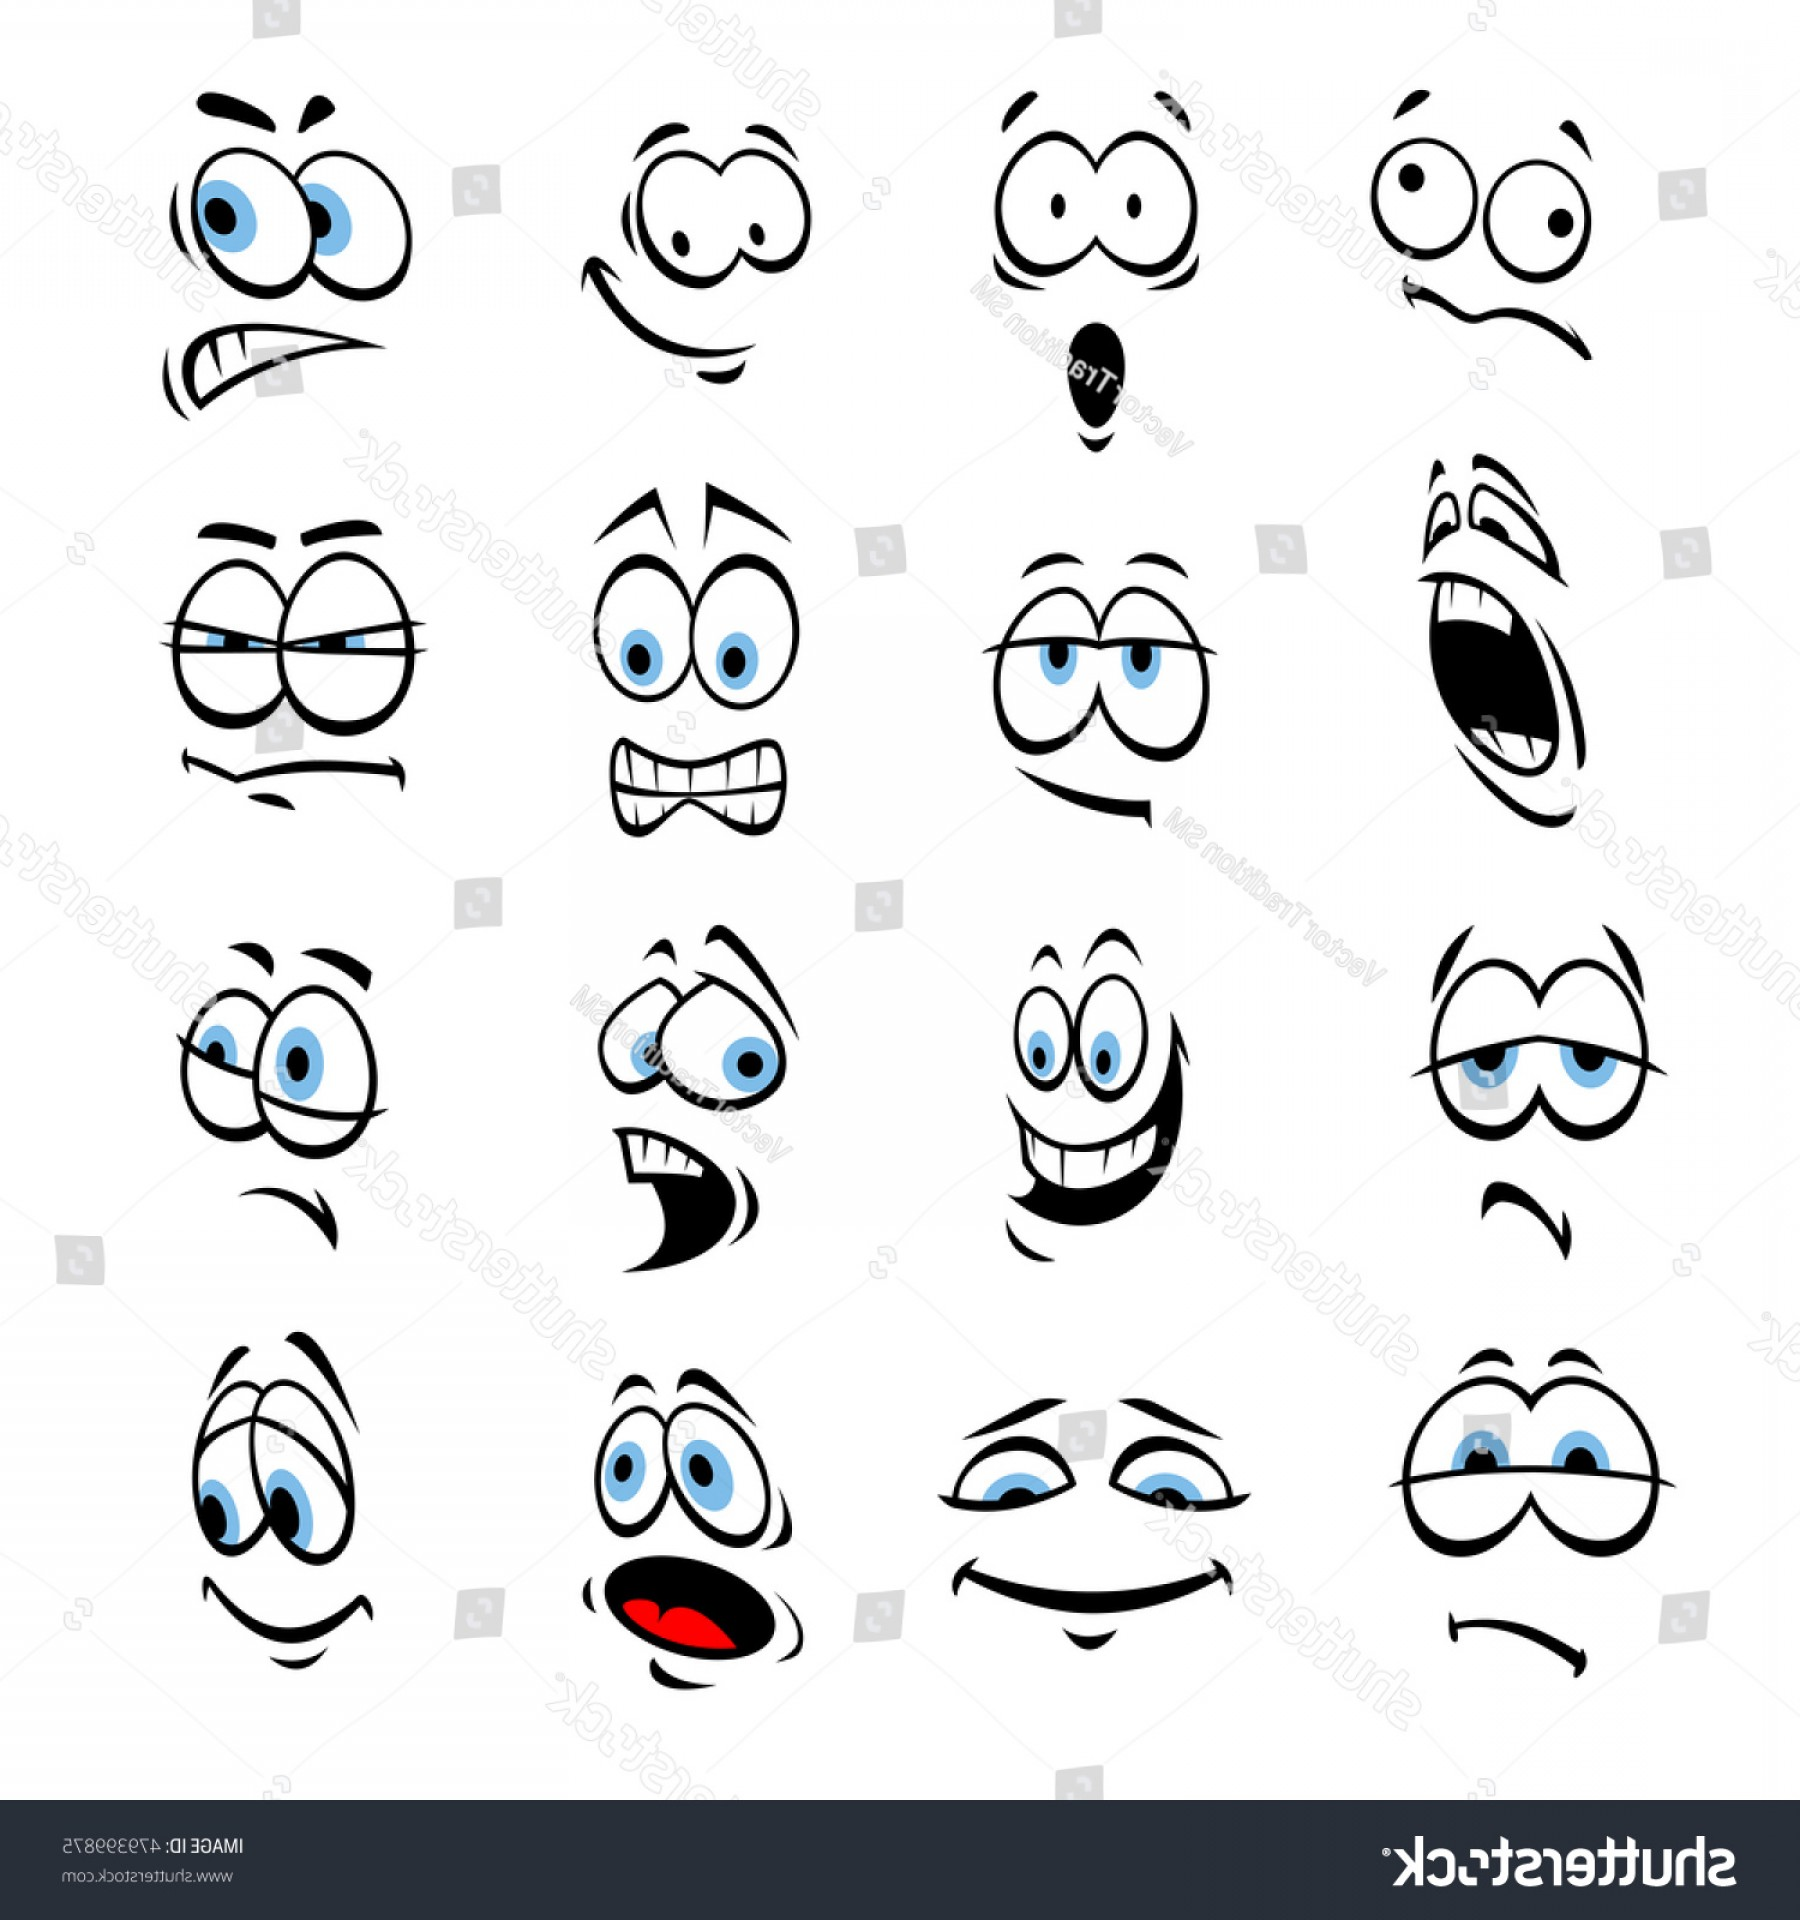 Green Cartoon Eyes Vector Png: Cartoon Eyes Face Expressions Emotions Cute